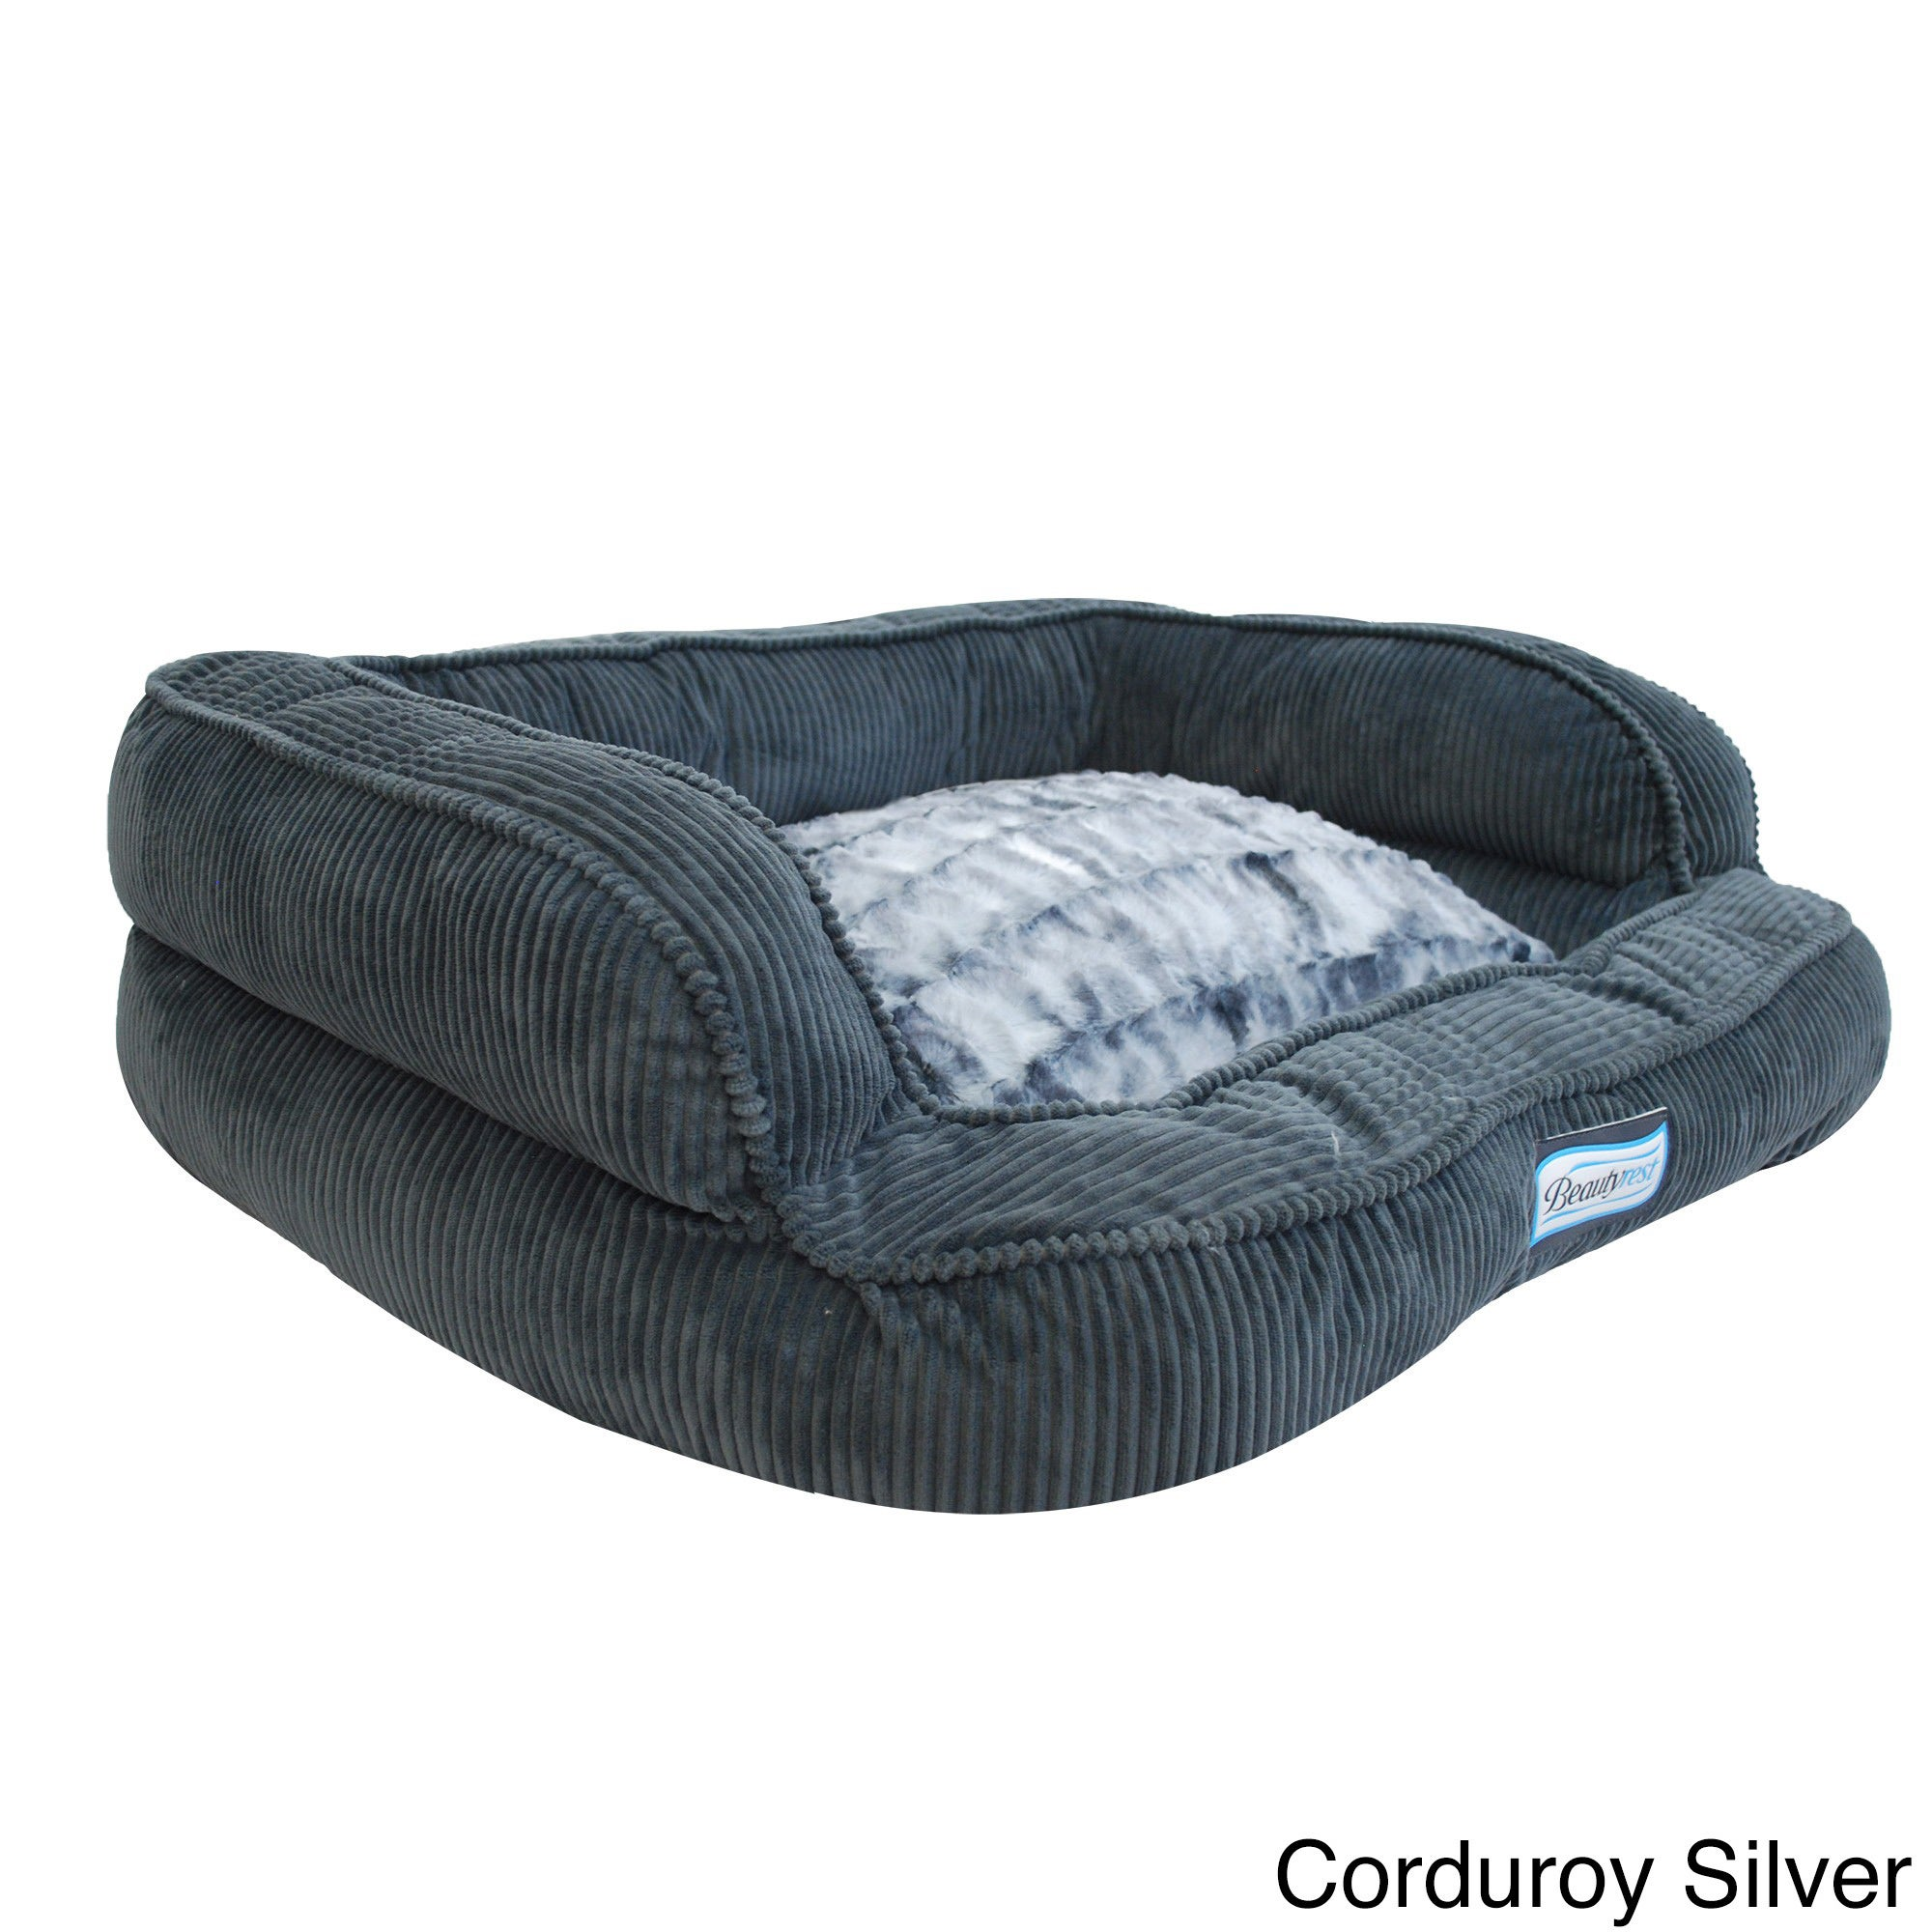 simmons beautyrest memory over product pet free overstock on shipping thera foam dog orders orthopedic bed supplies